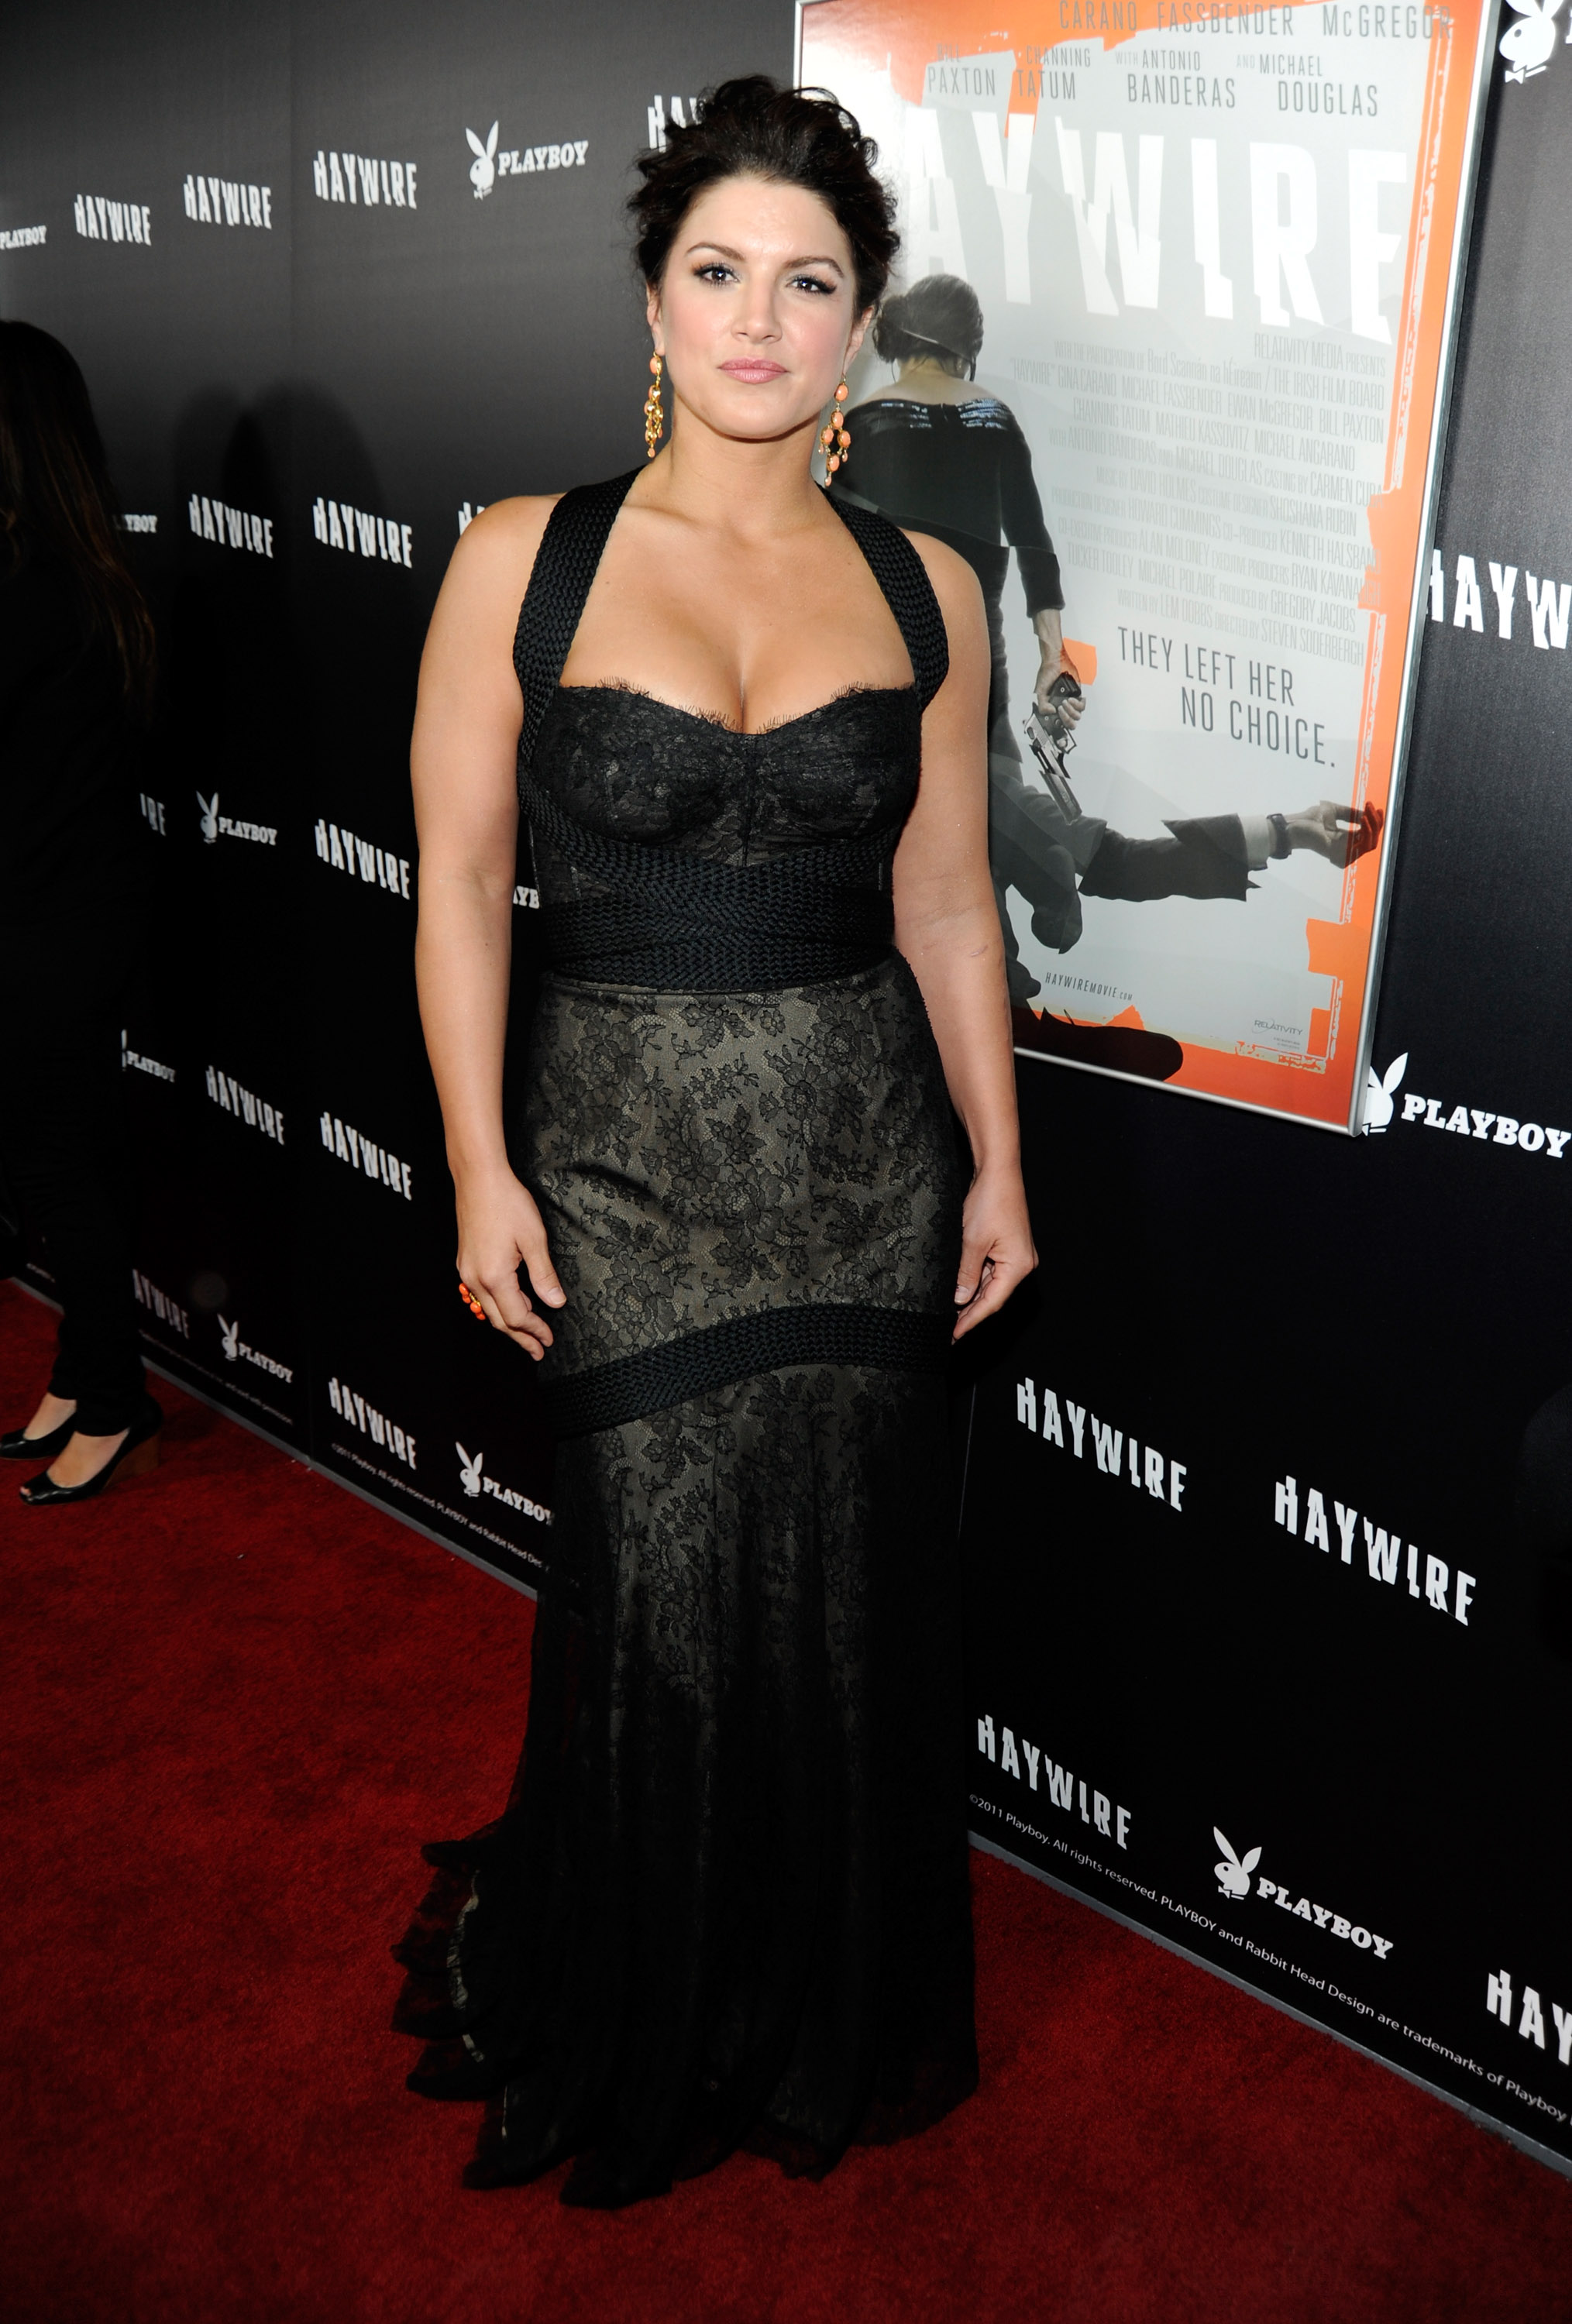 Gina Carano at an event for Haywire (2011)